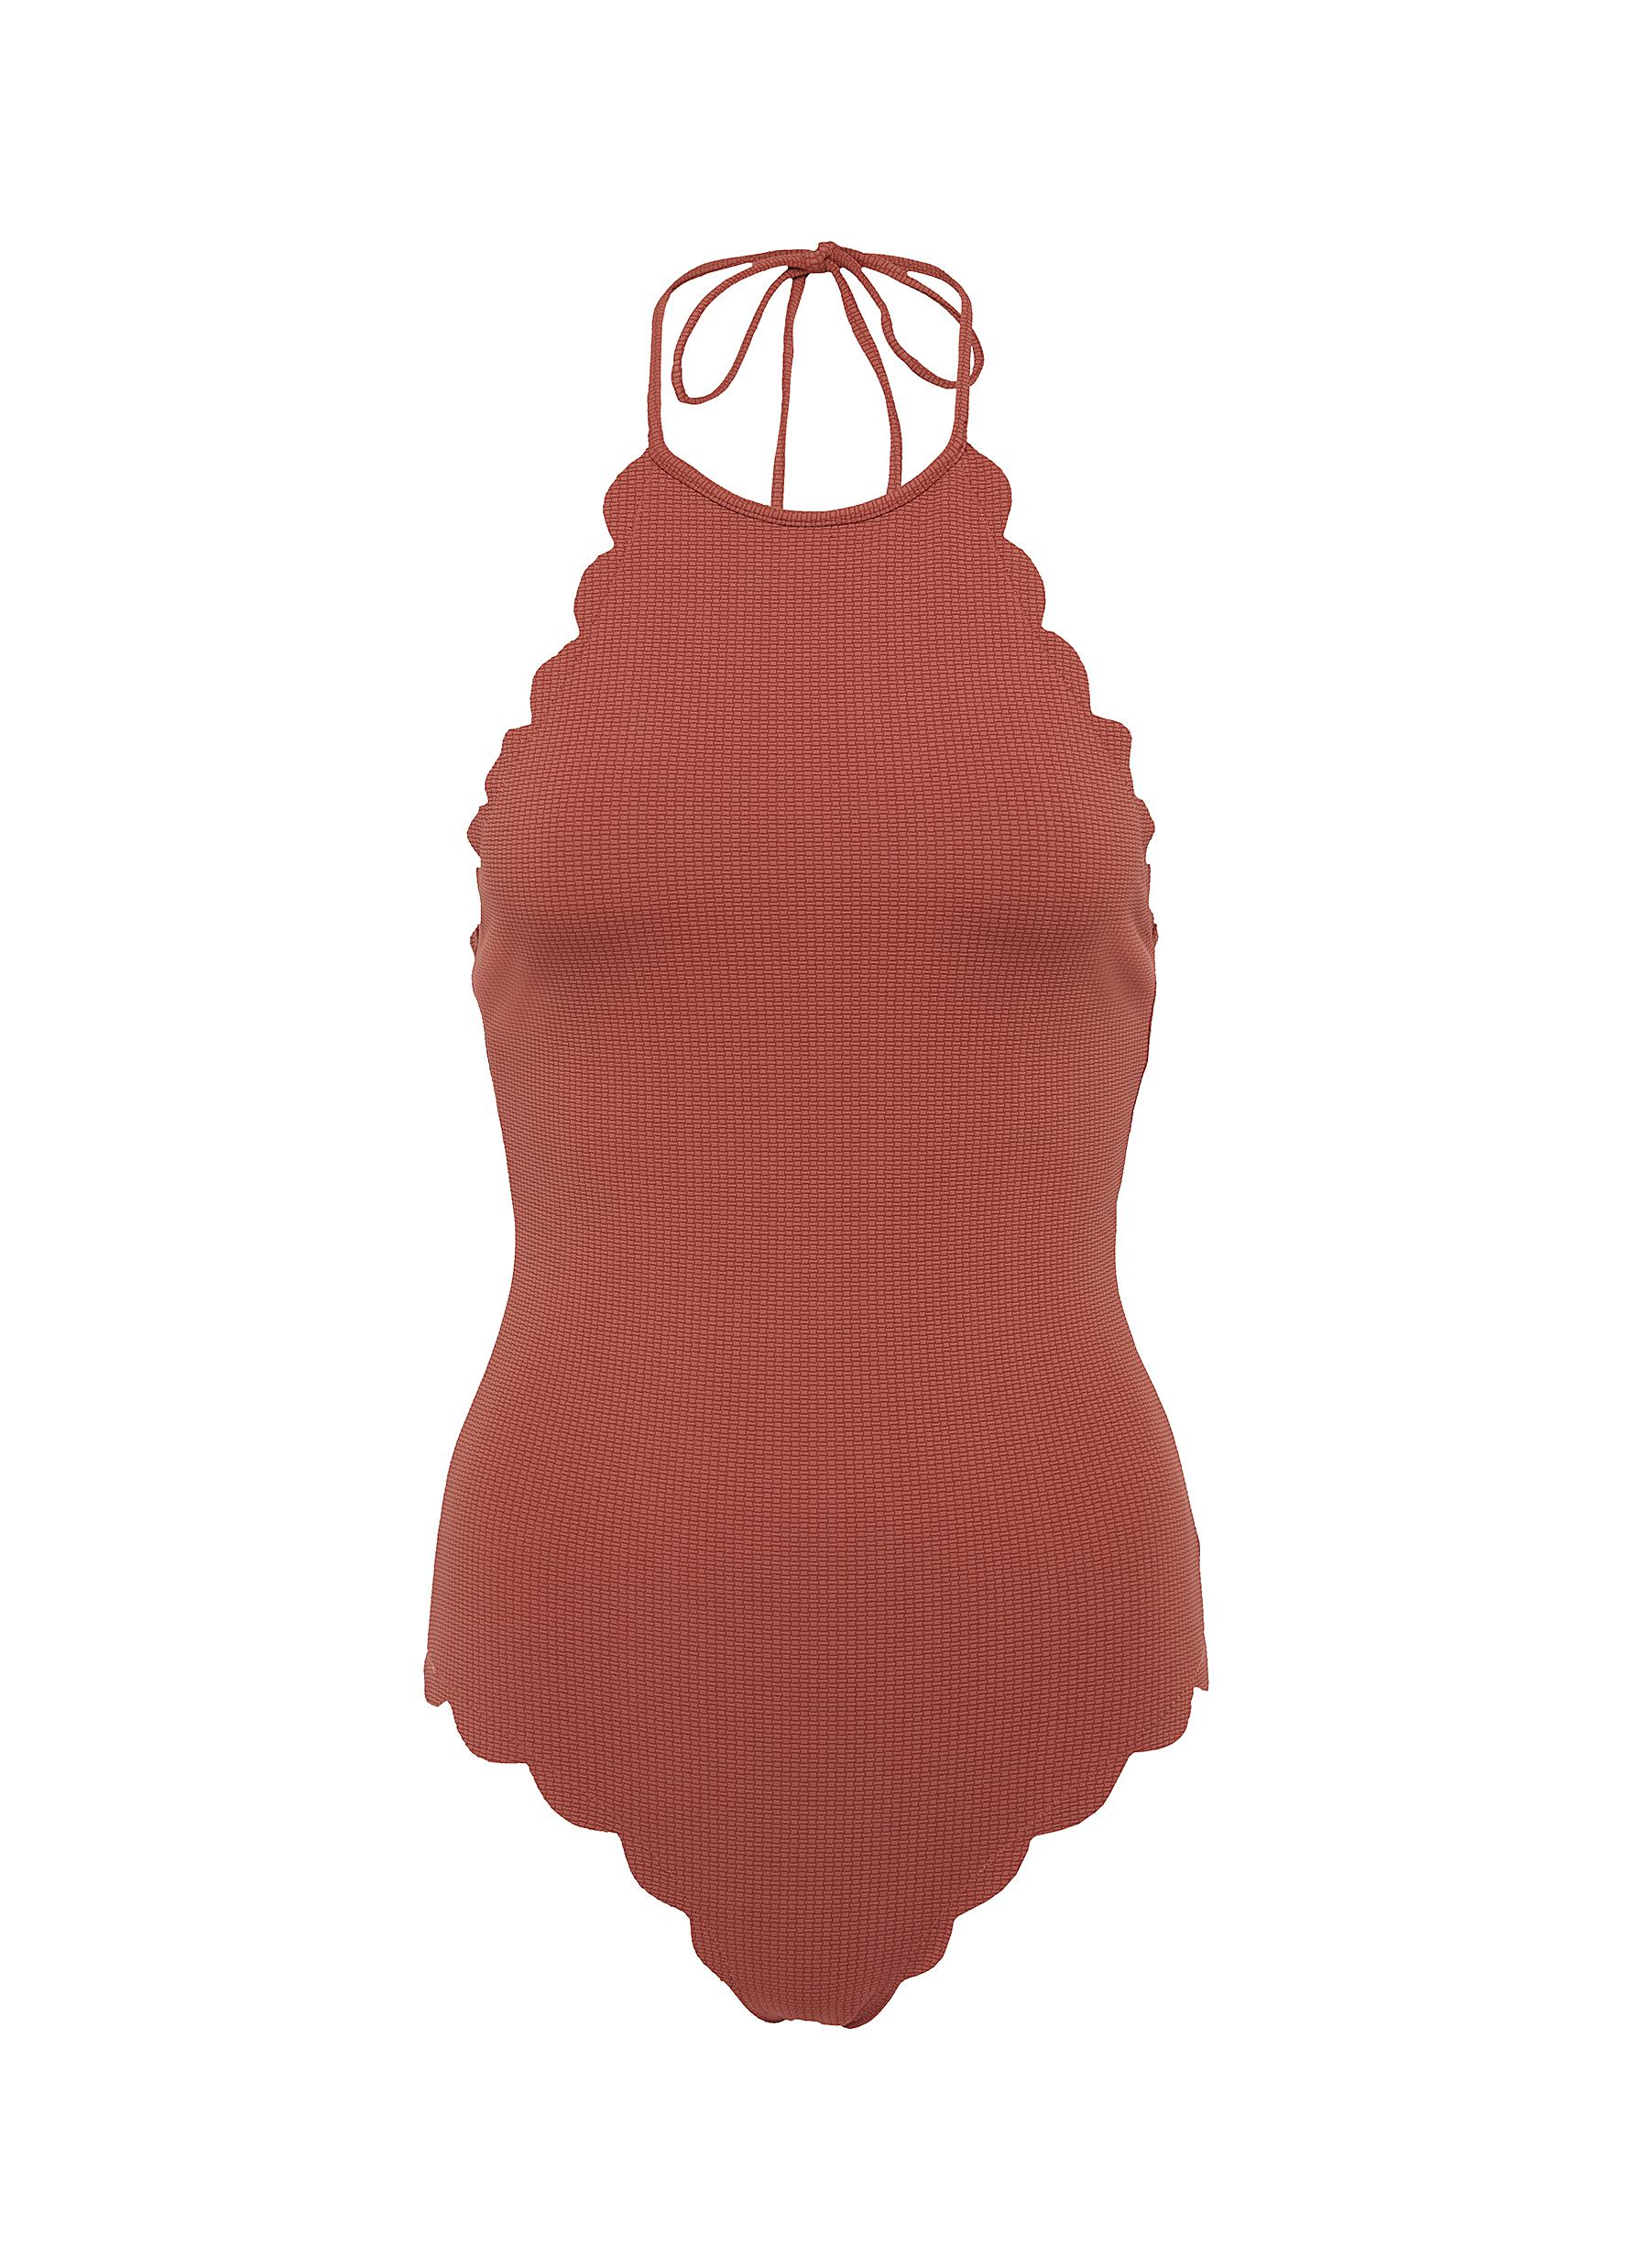 Mott scalloped halterneck one-piece swimsuit by Marysia